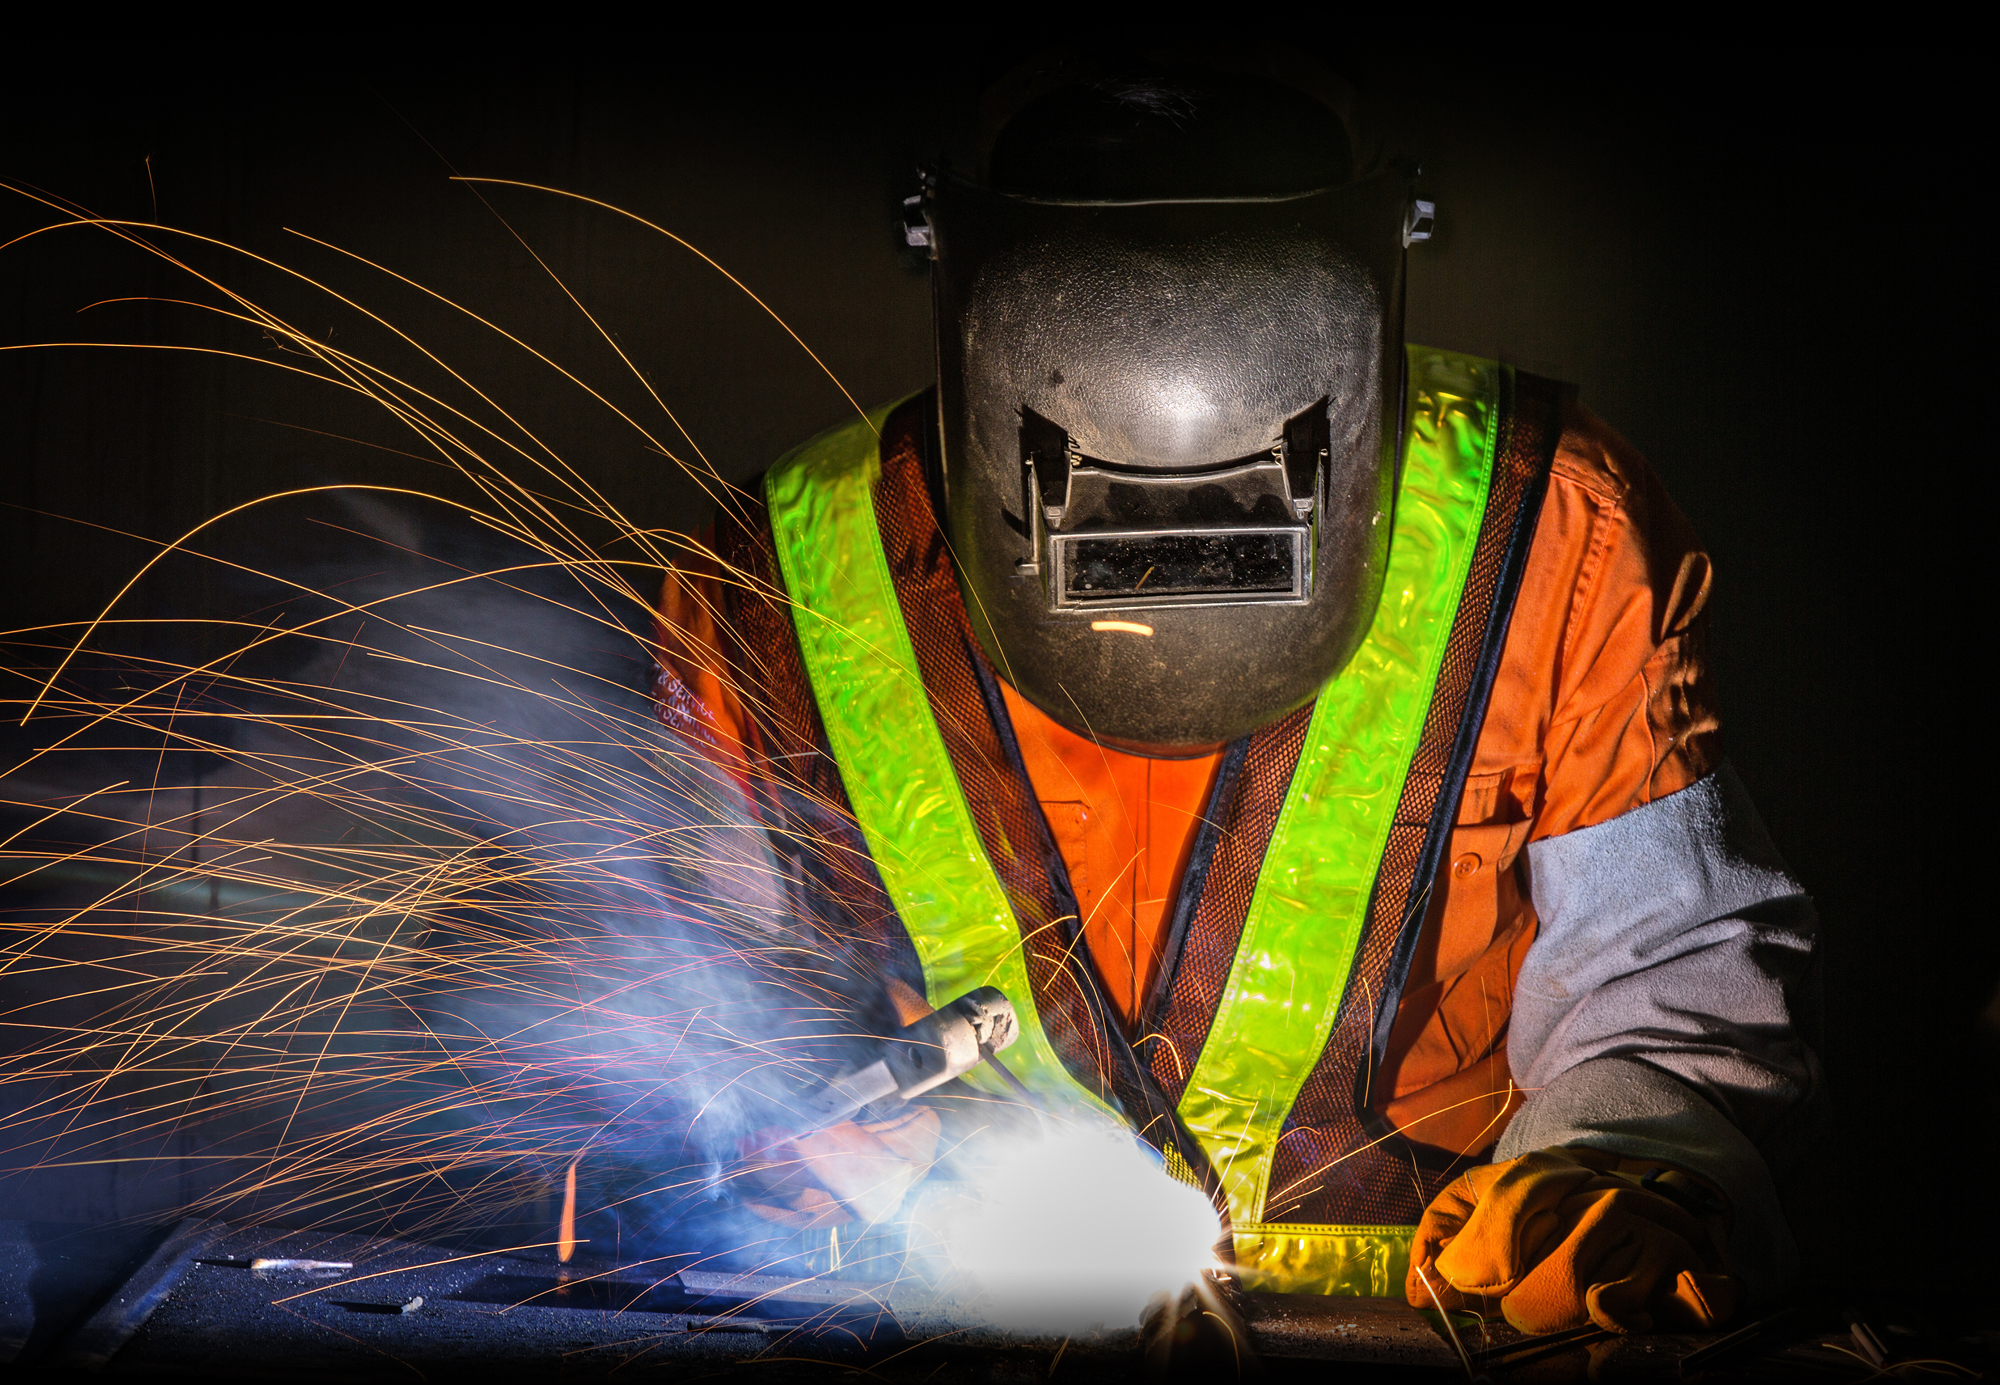 Welding Bozeman - Fabrication - Repair